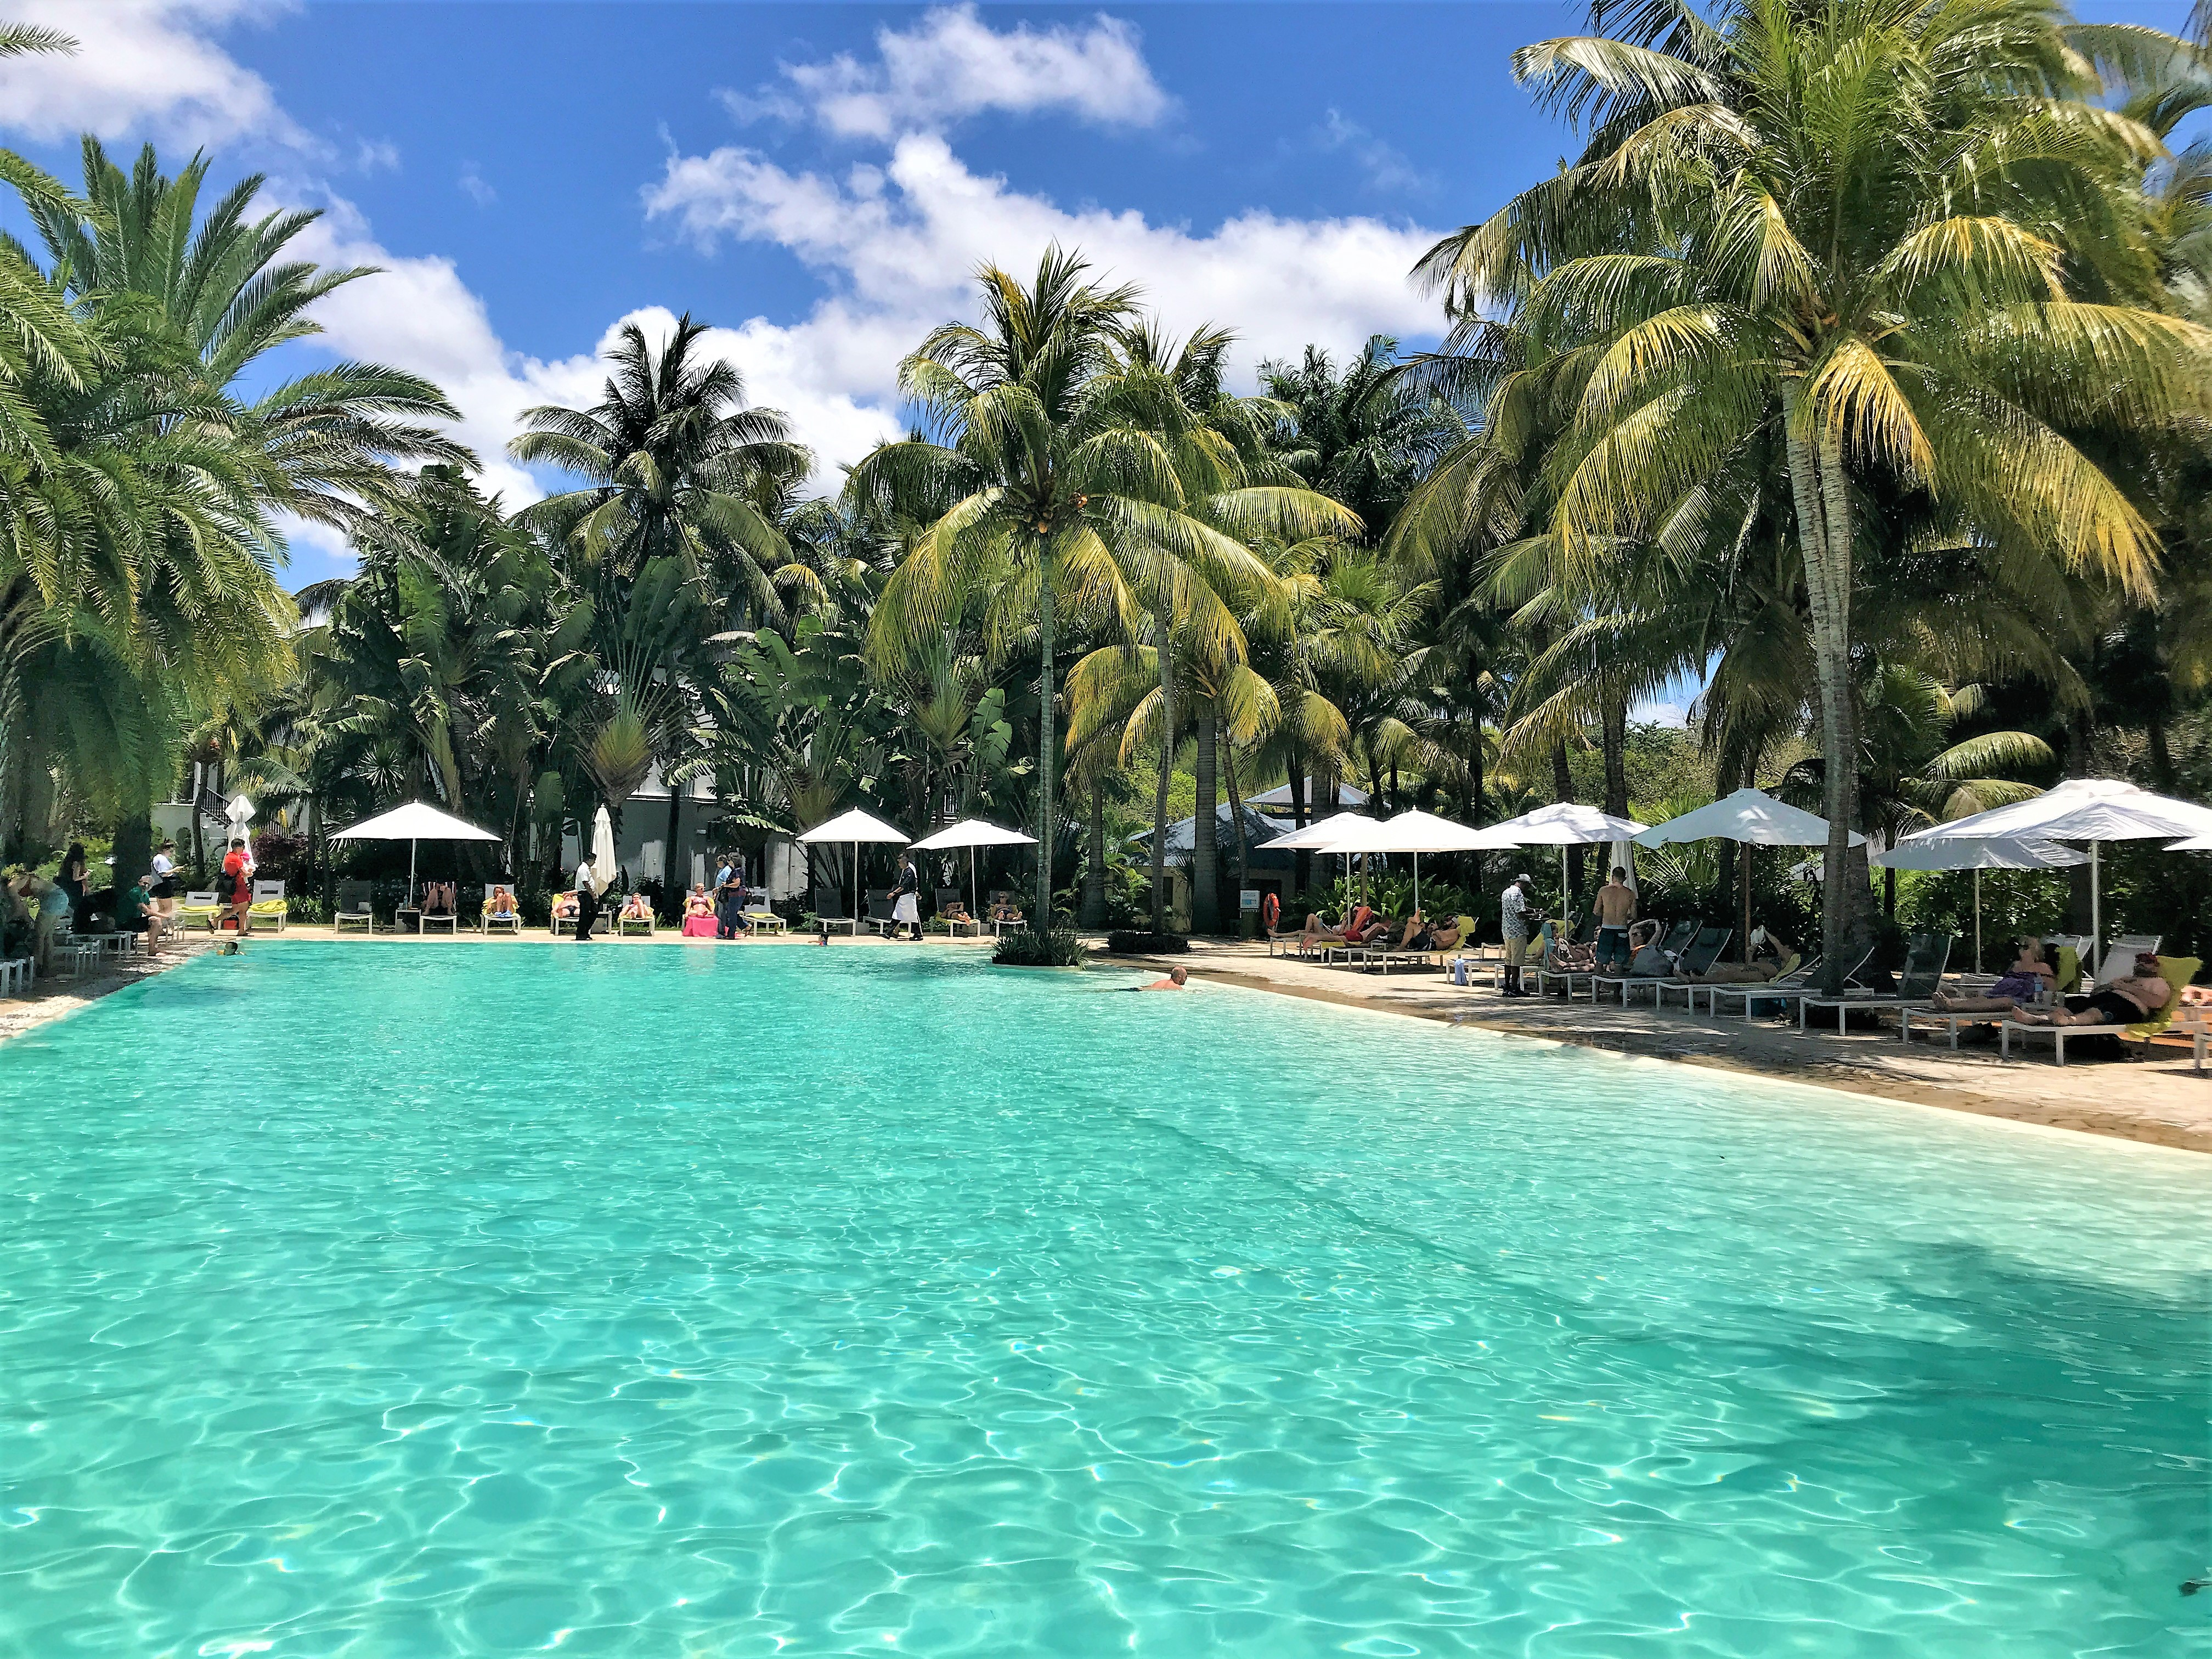 Ravenala Attitude Hotel Mauritius In 360 Review Turning Left